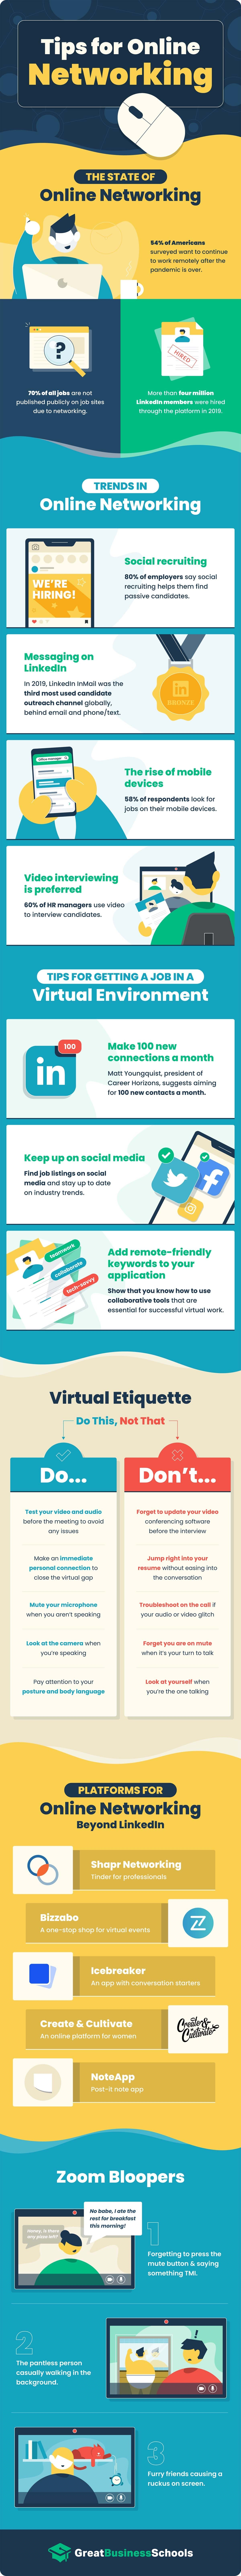 Tips for Online Networking #infographic